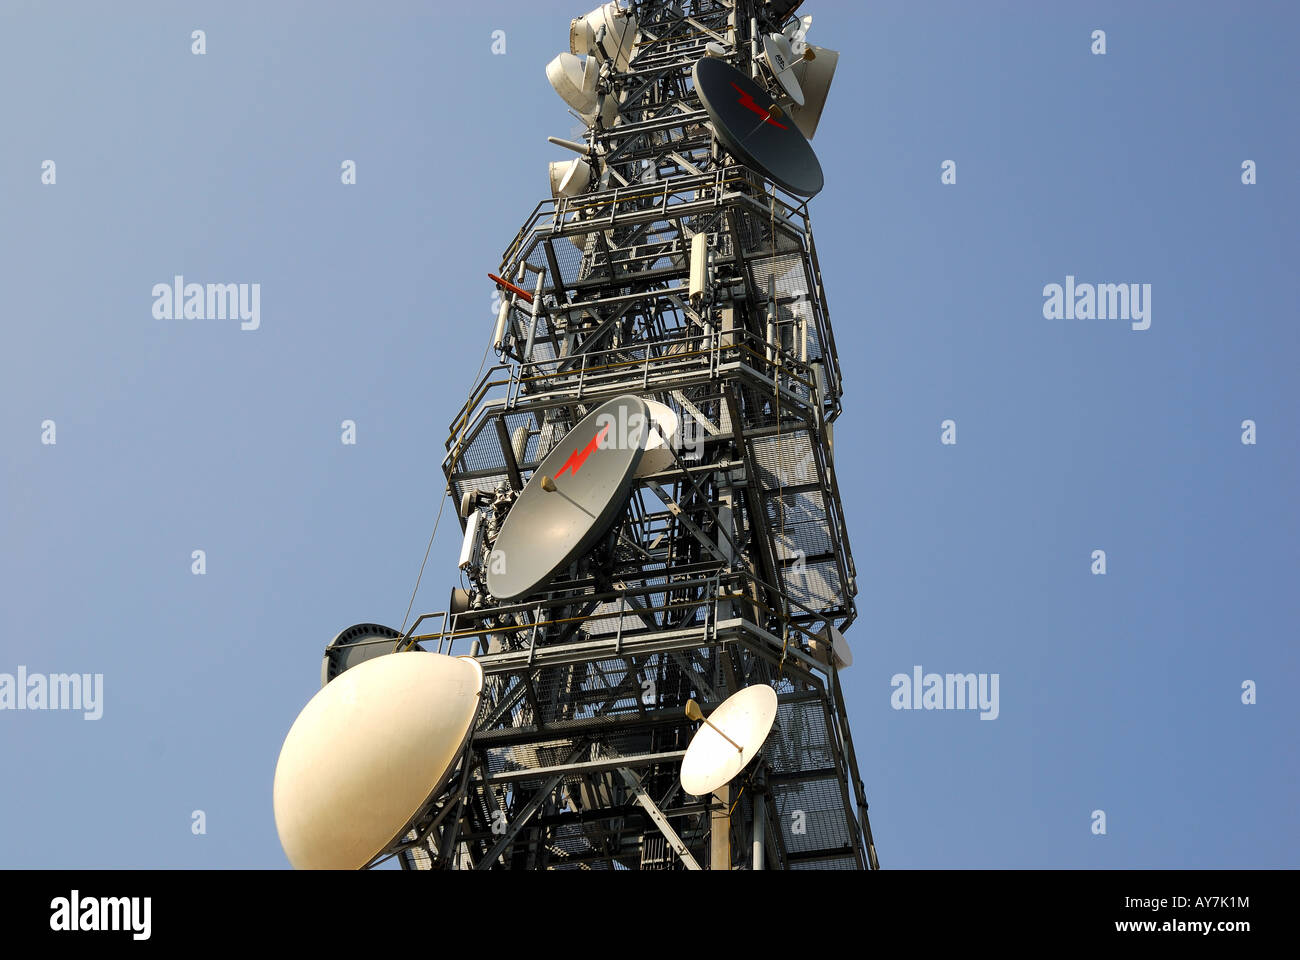 Signal repeater - Stock Image